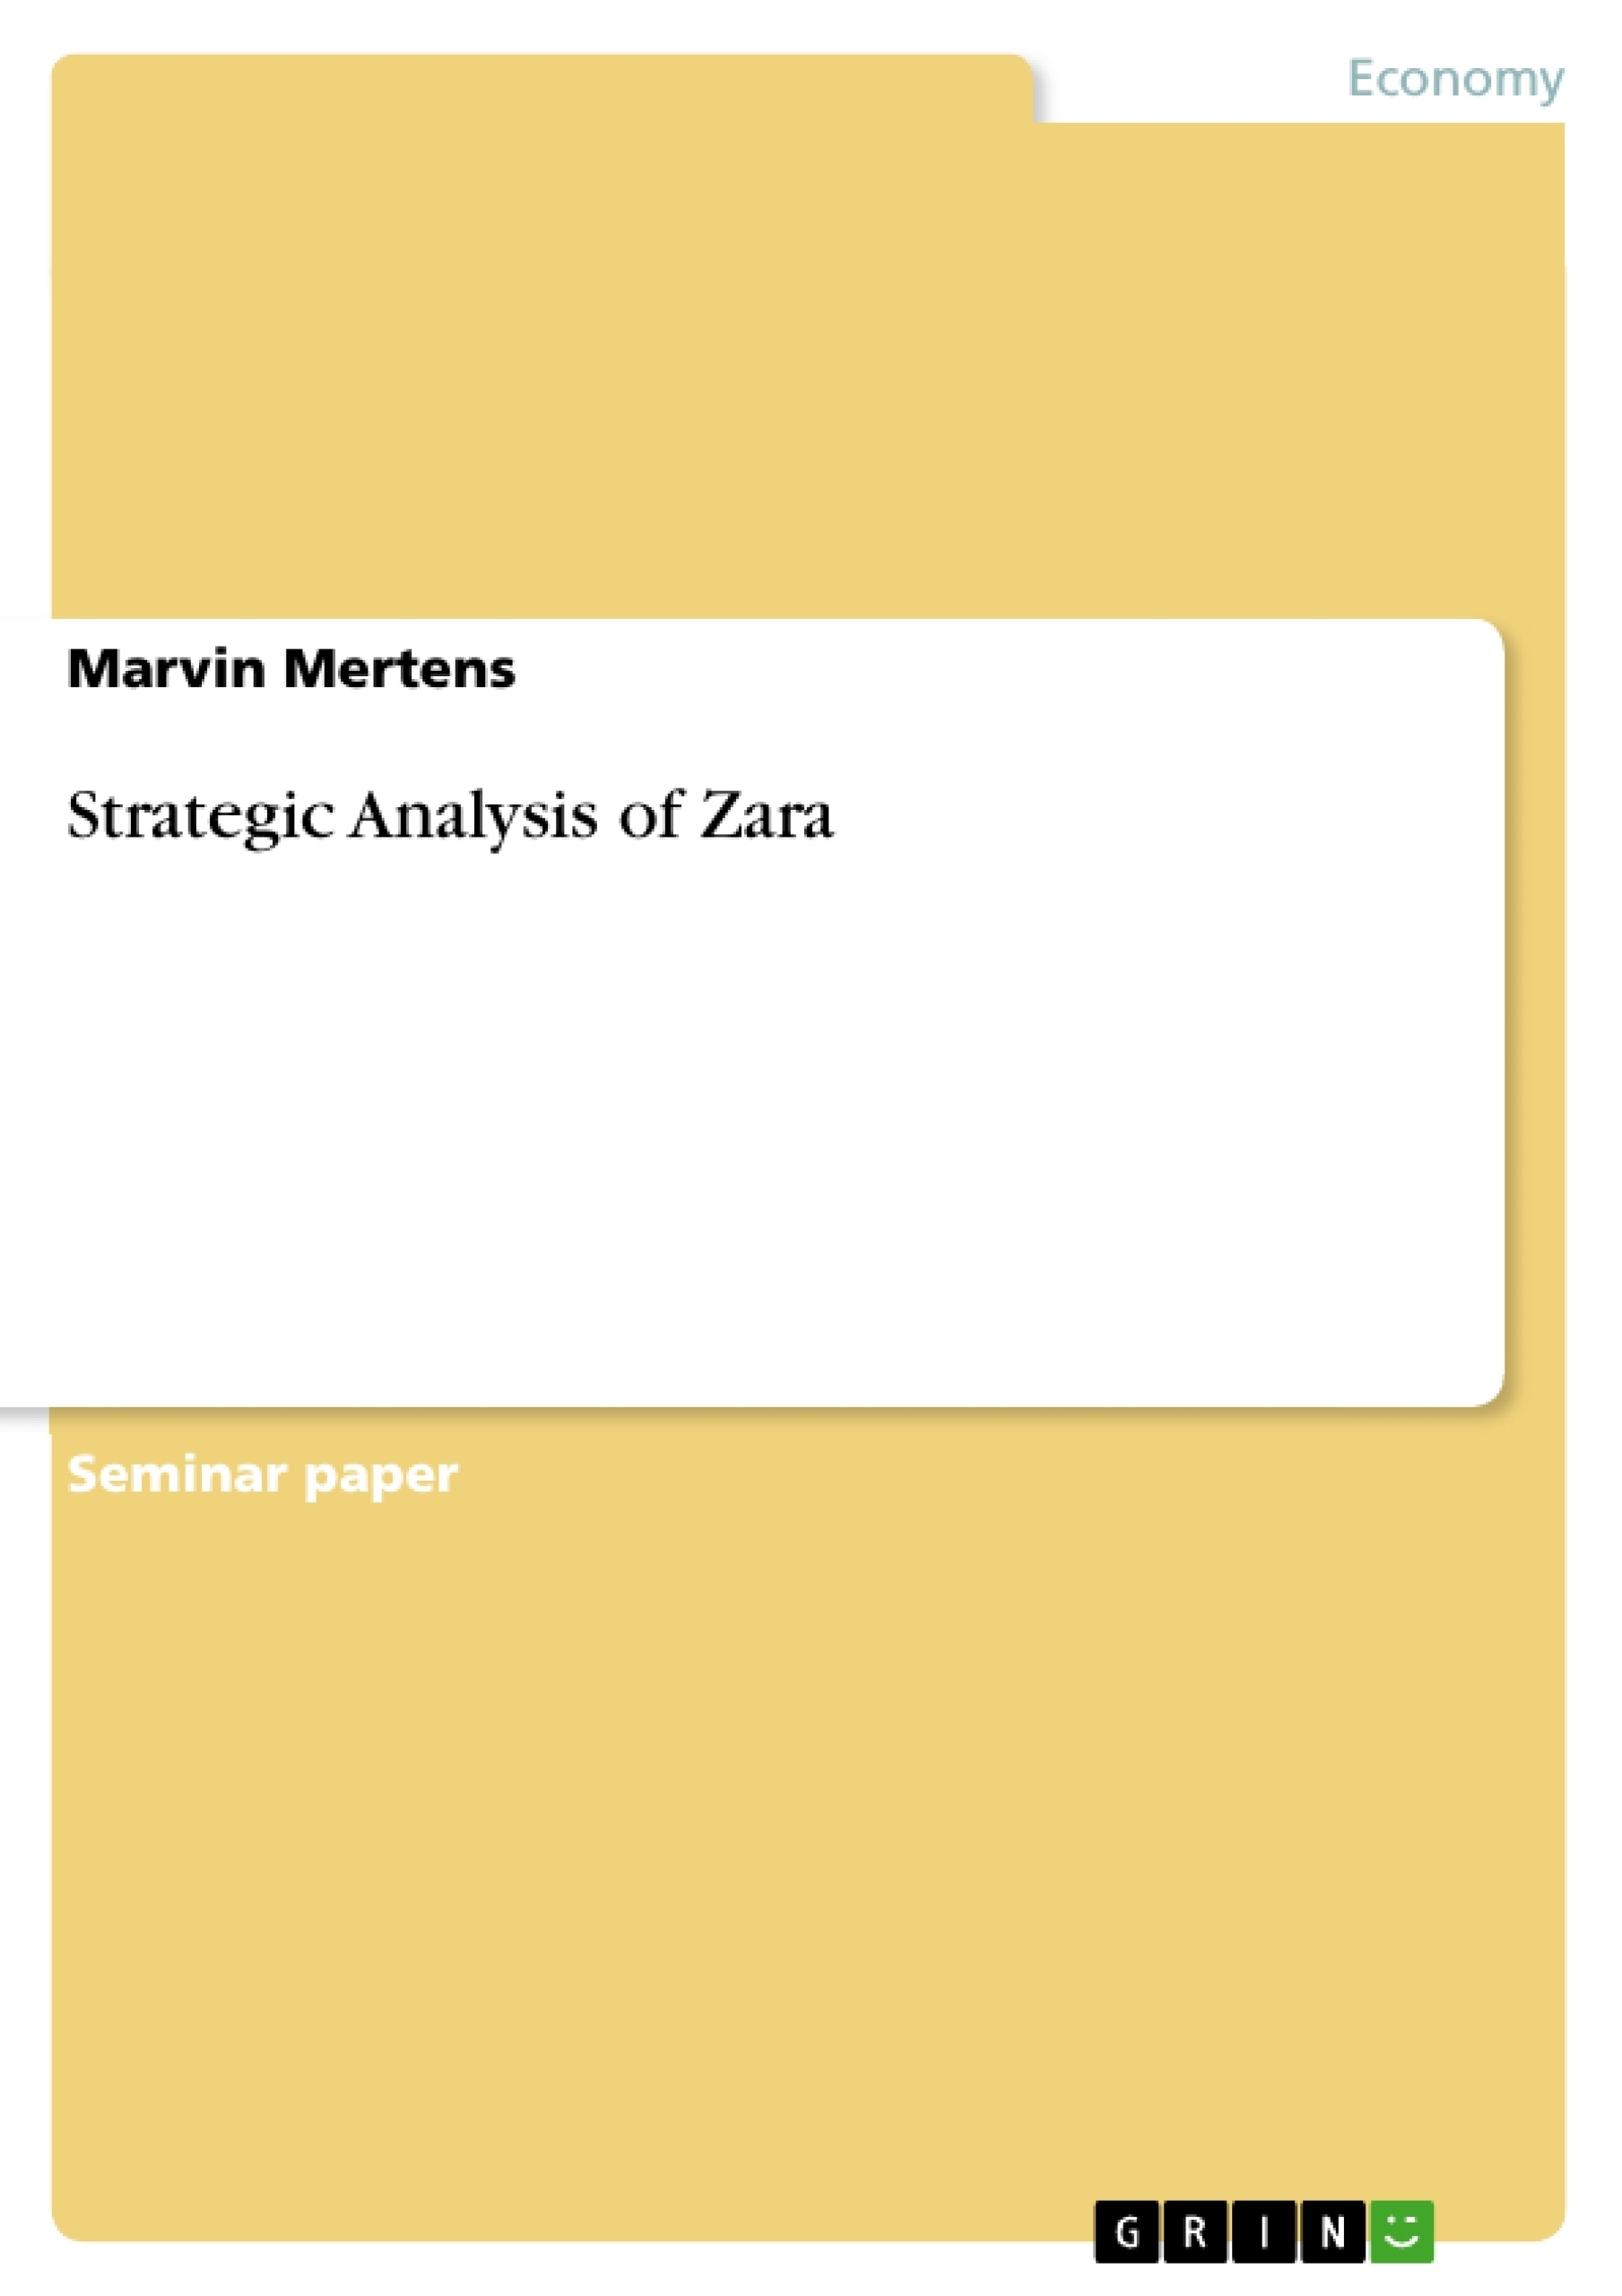 Case Study of Zara: Use of Technology to Improve Operational Responsiveness